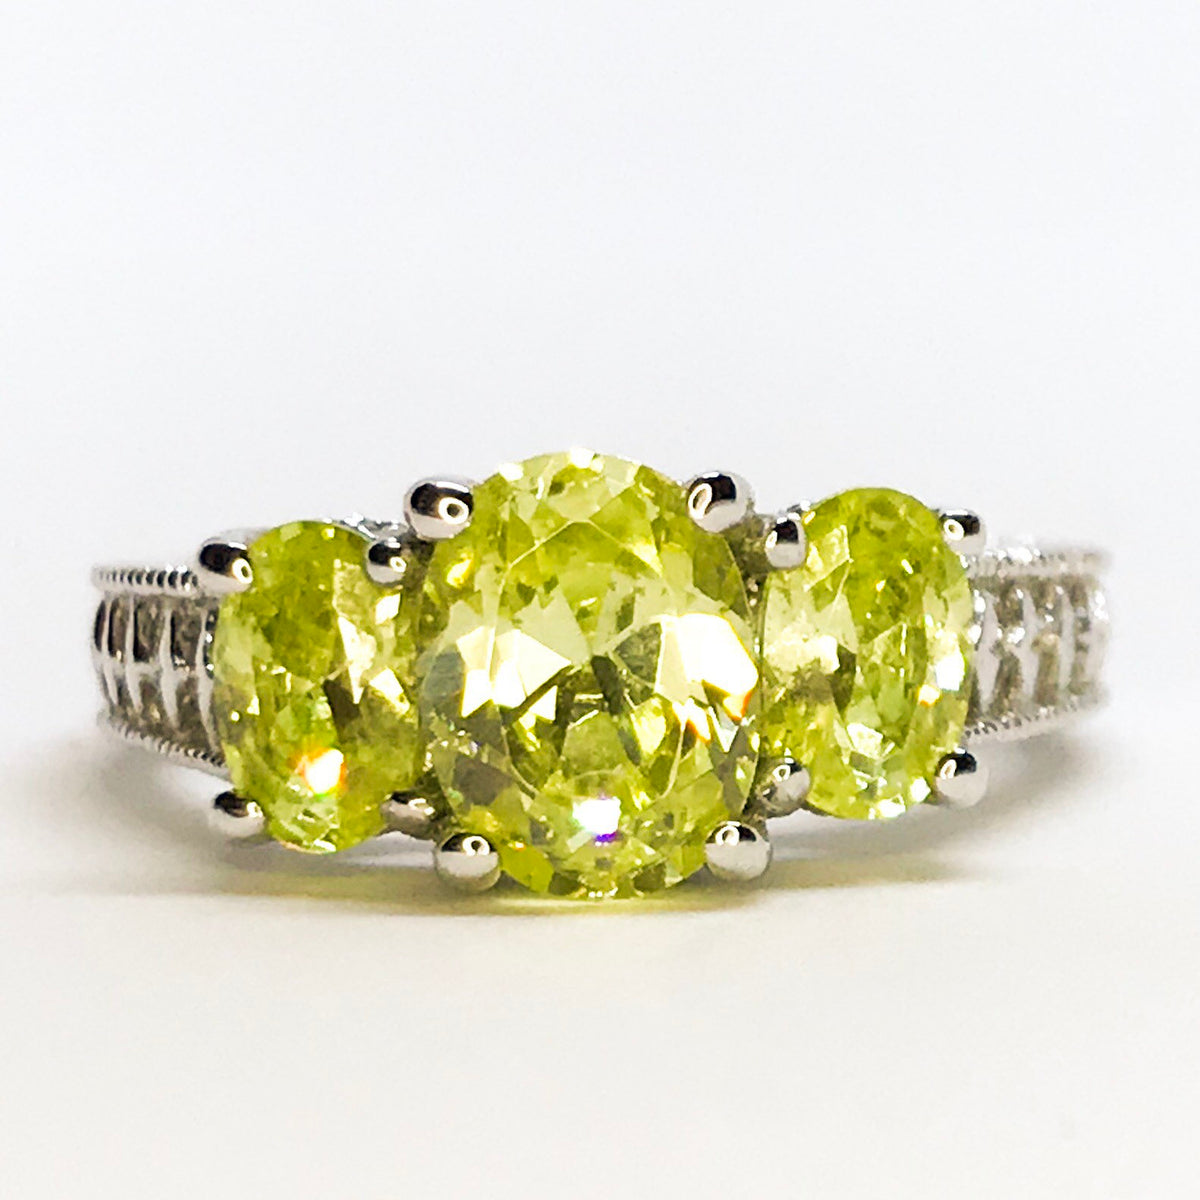 NEW 14k White Gold Layered on Sterling Silver Three Oval Lime Green Stones Ring